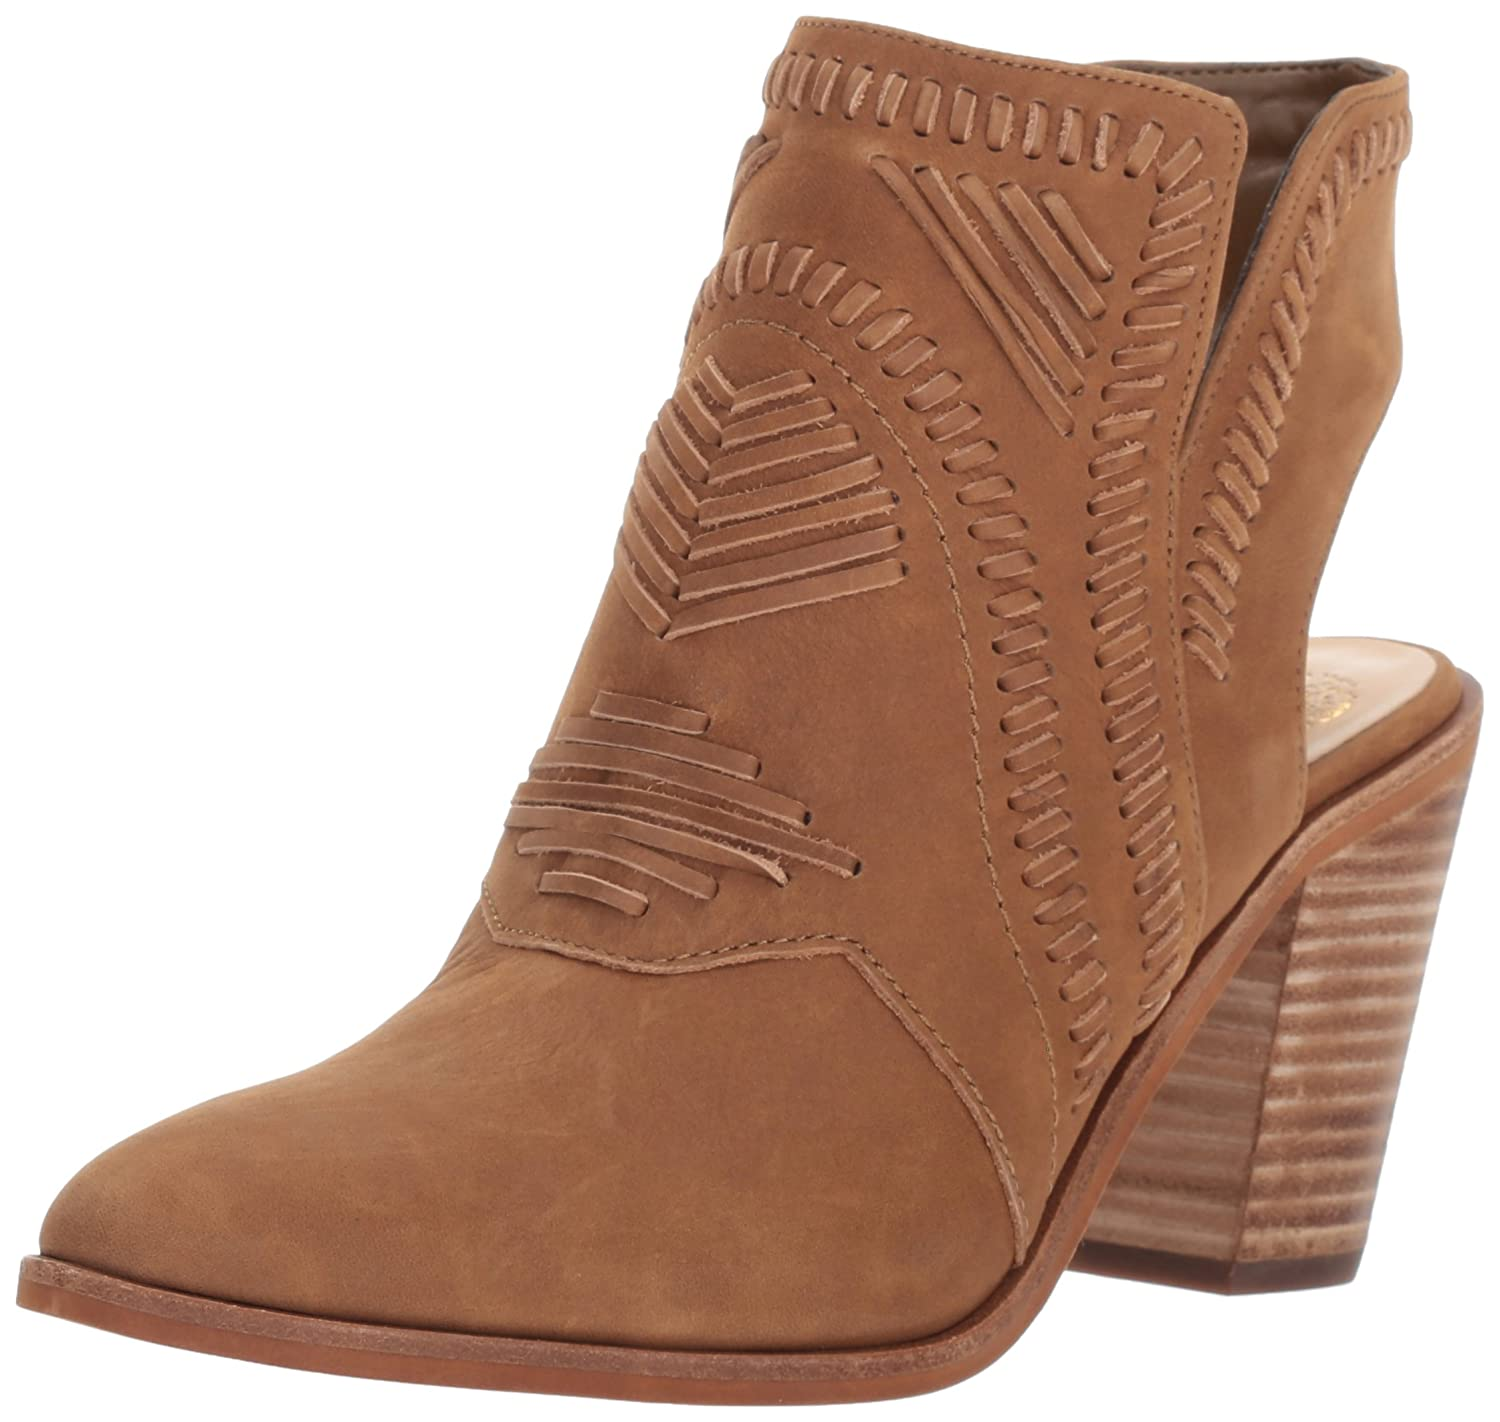 Vince Camuto Womens Binks Ankle Boot